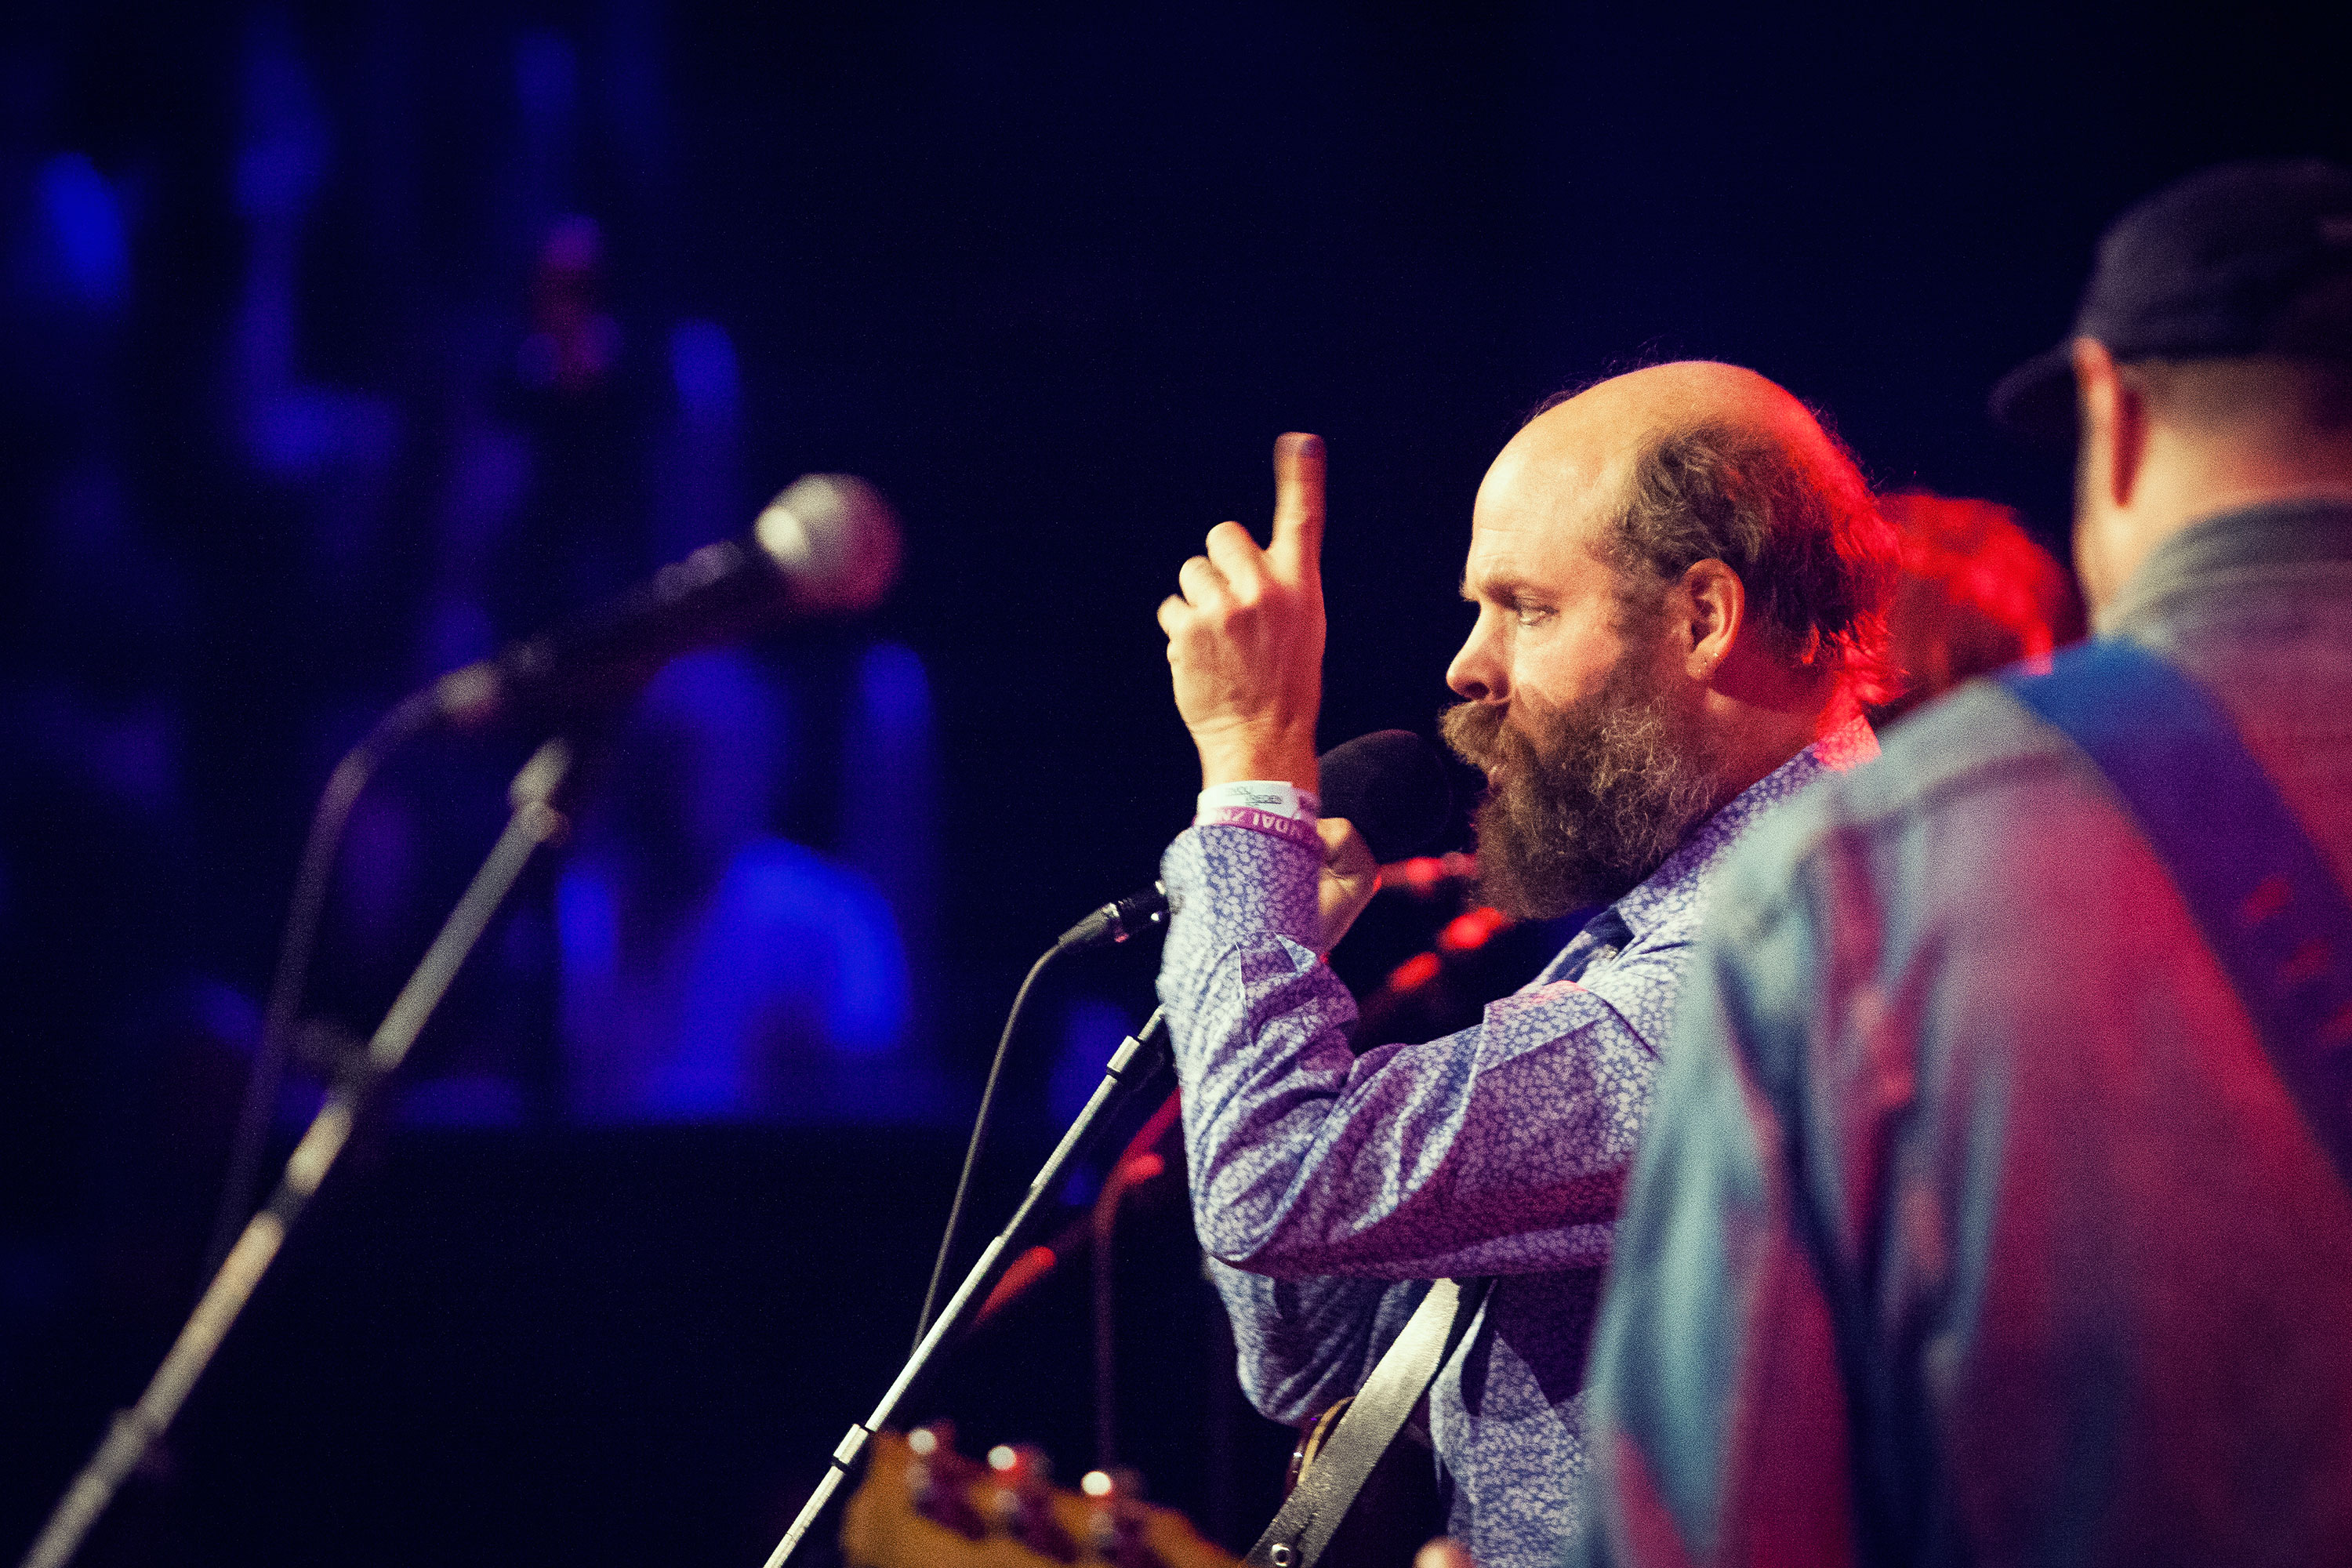 Bonnie Prince Billy @ Le Guess Who? 2014 door Juri Hiensch